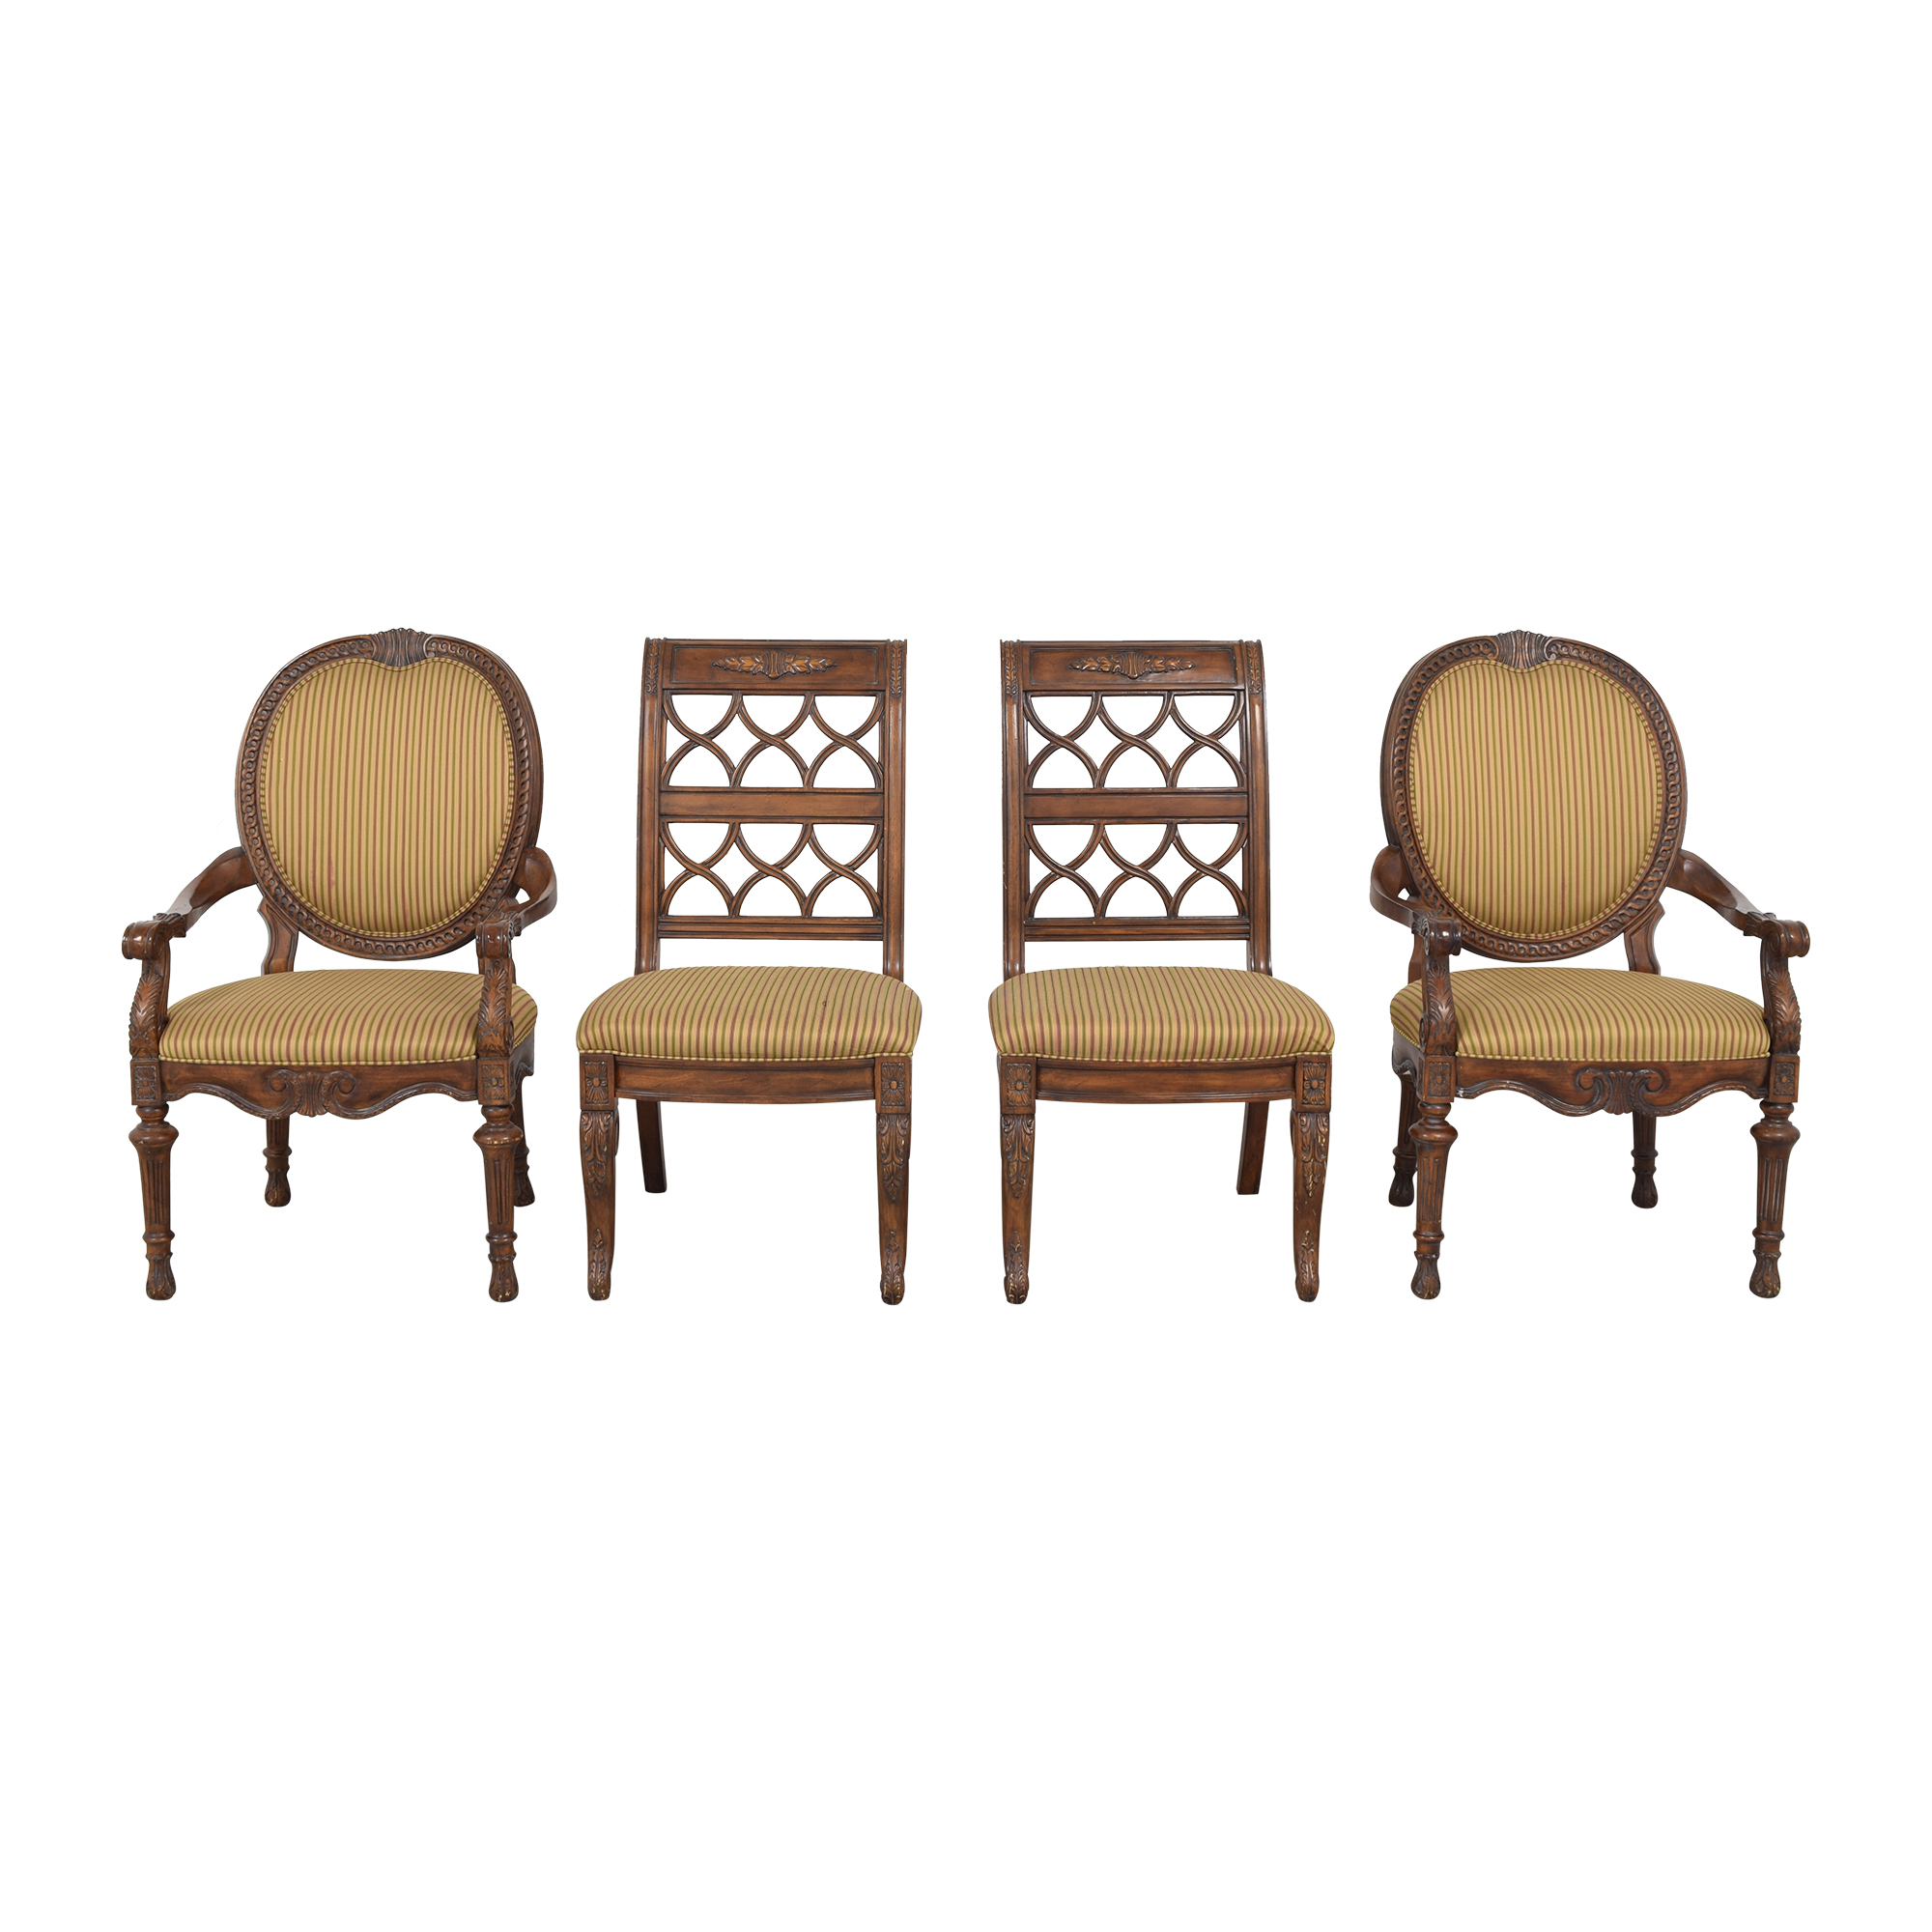 buy Drexel Heritage Dining Chairs Drexel Heritage Dining Chairs